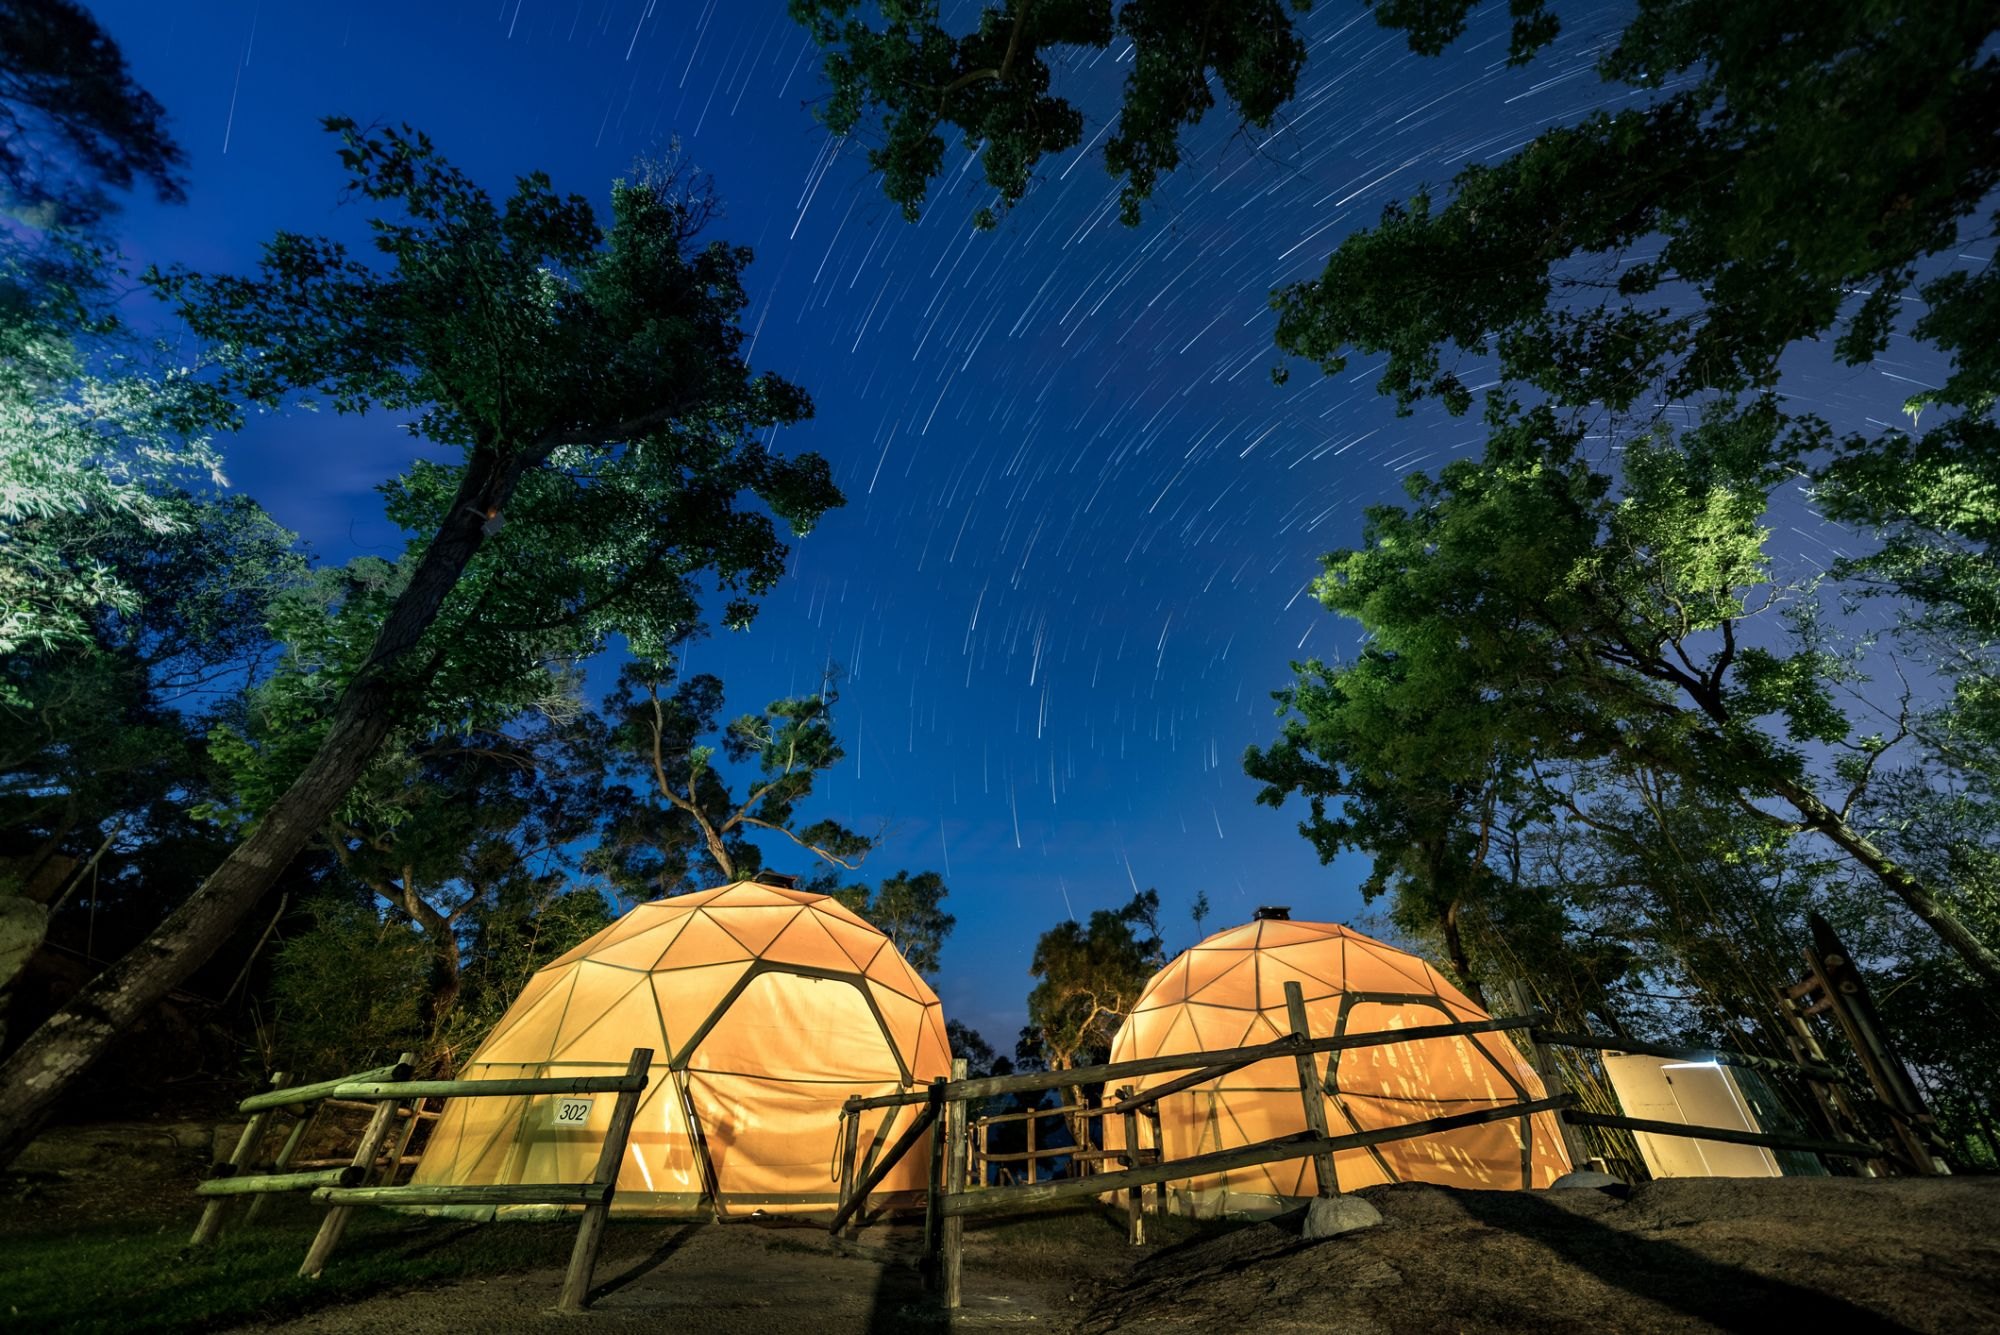 night sky with star trails over 2 dume tents